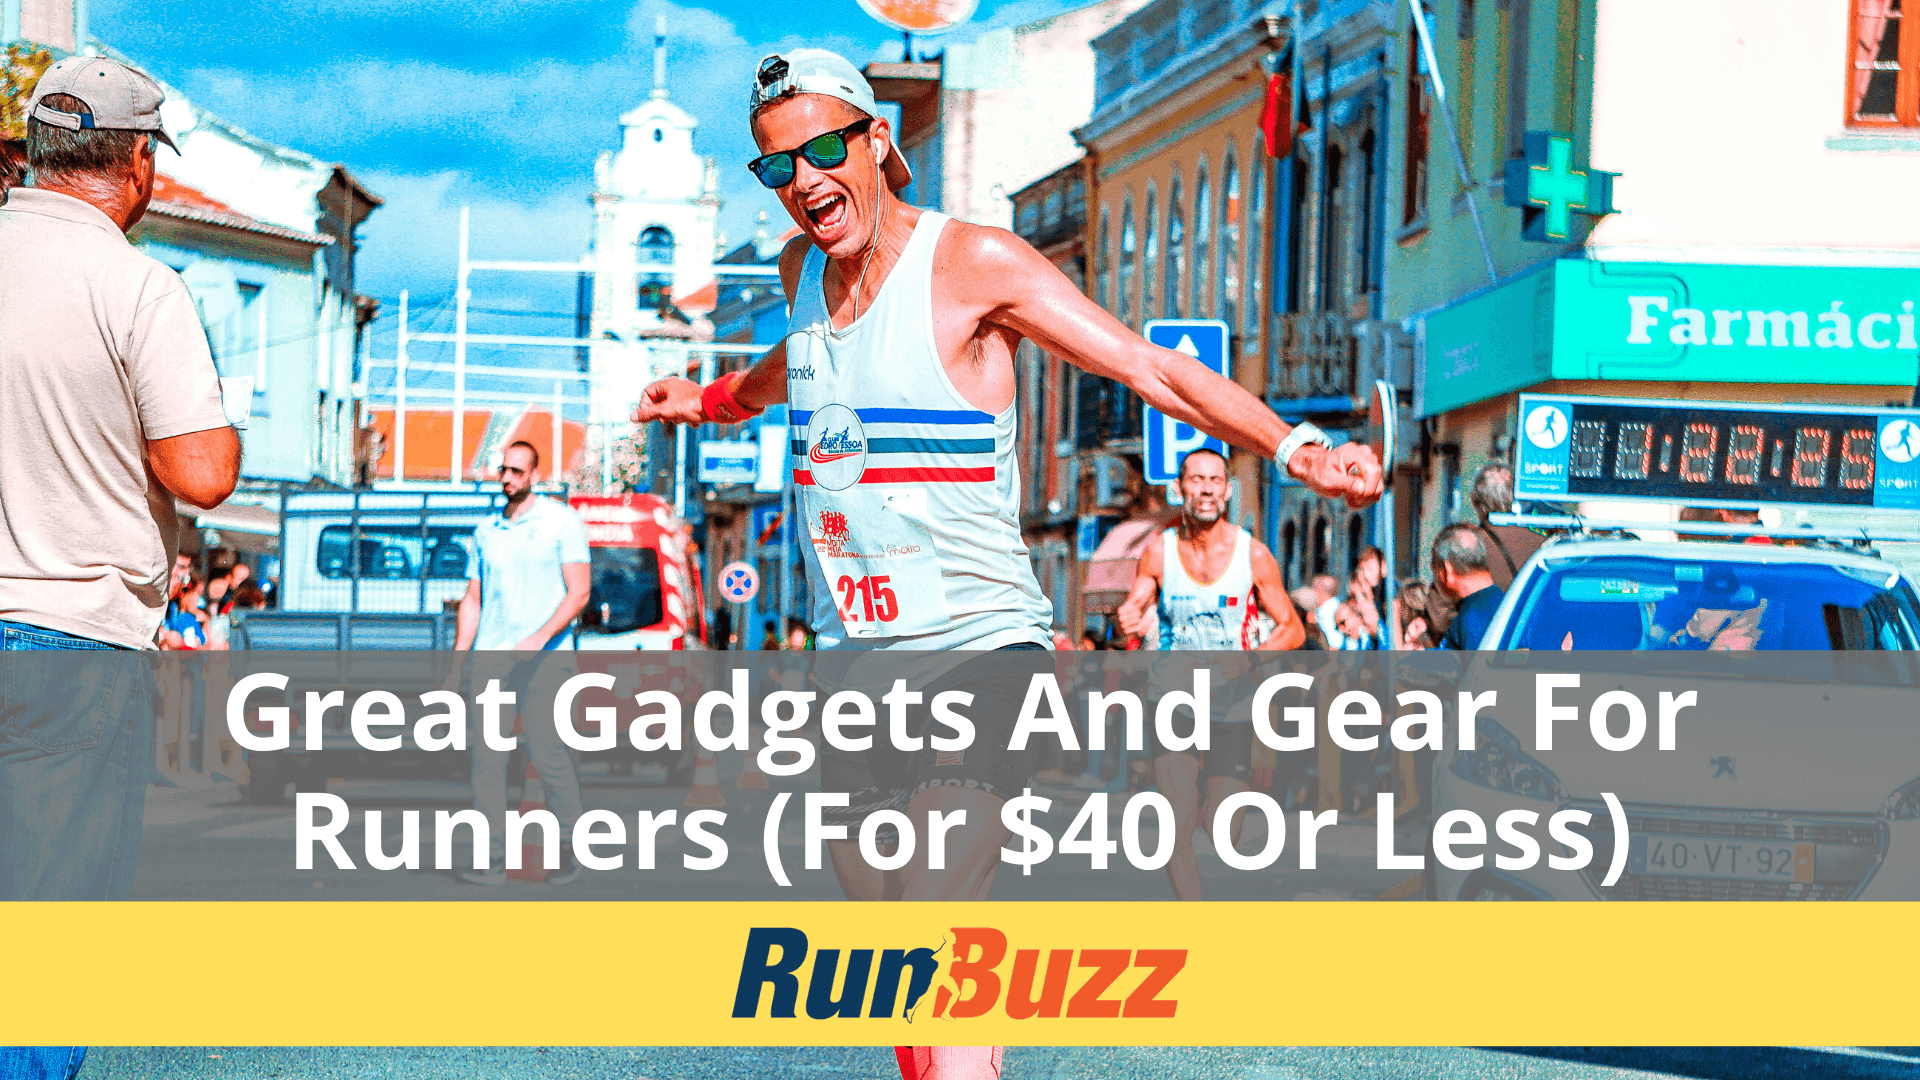 Great-Gadgets-And-Gear-For-Runners-For-40-Or-Less